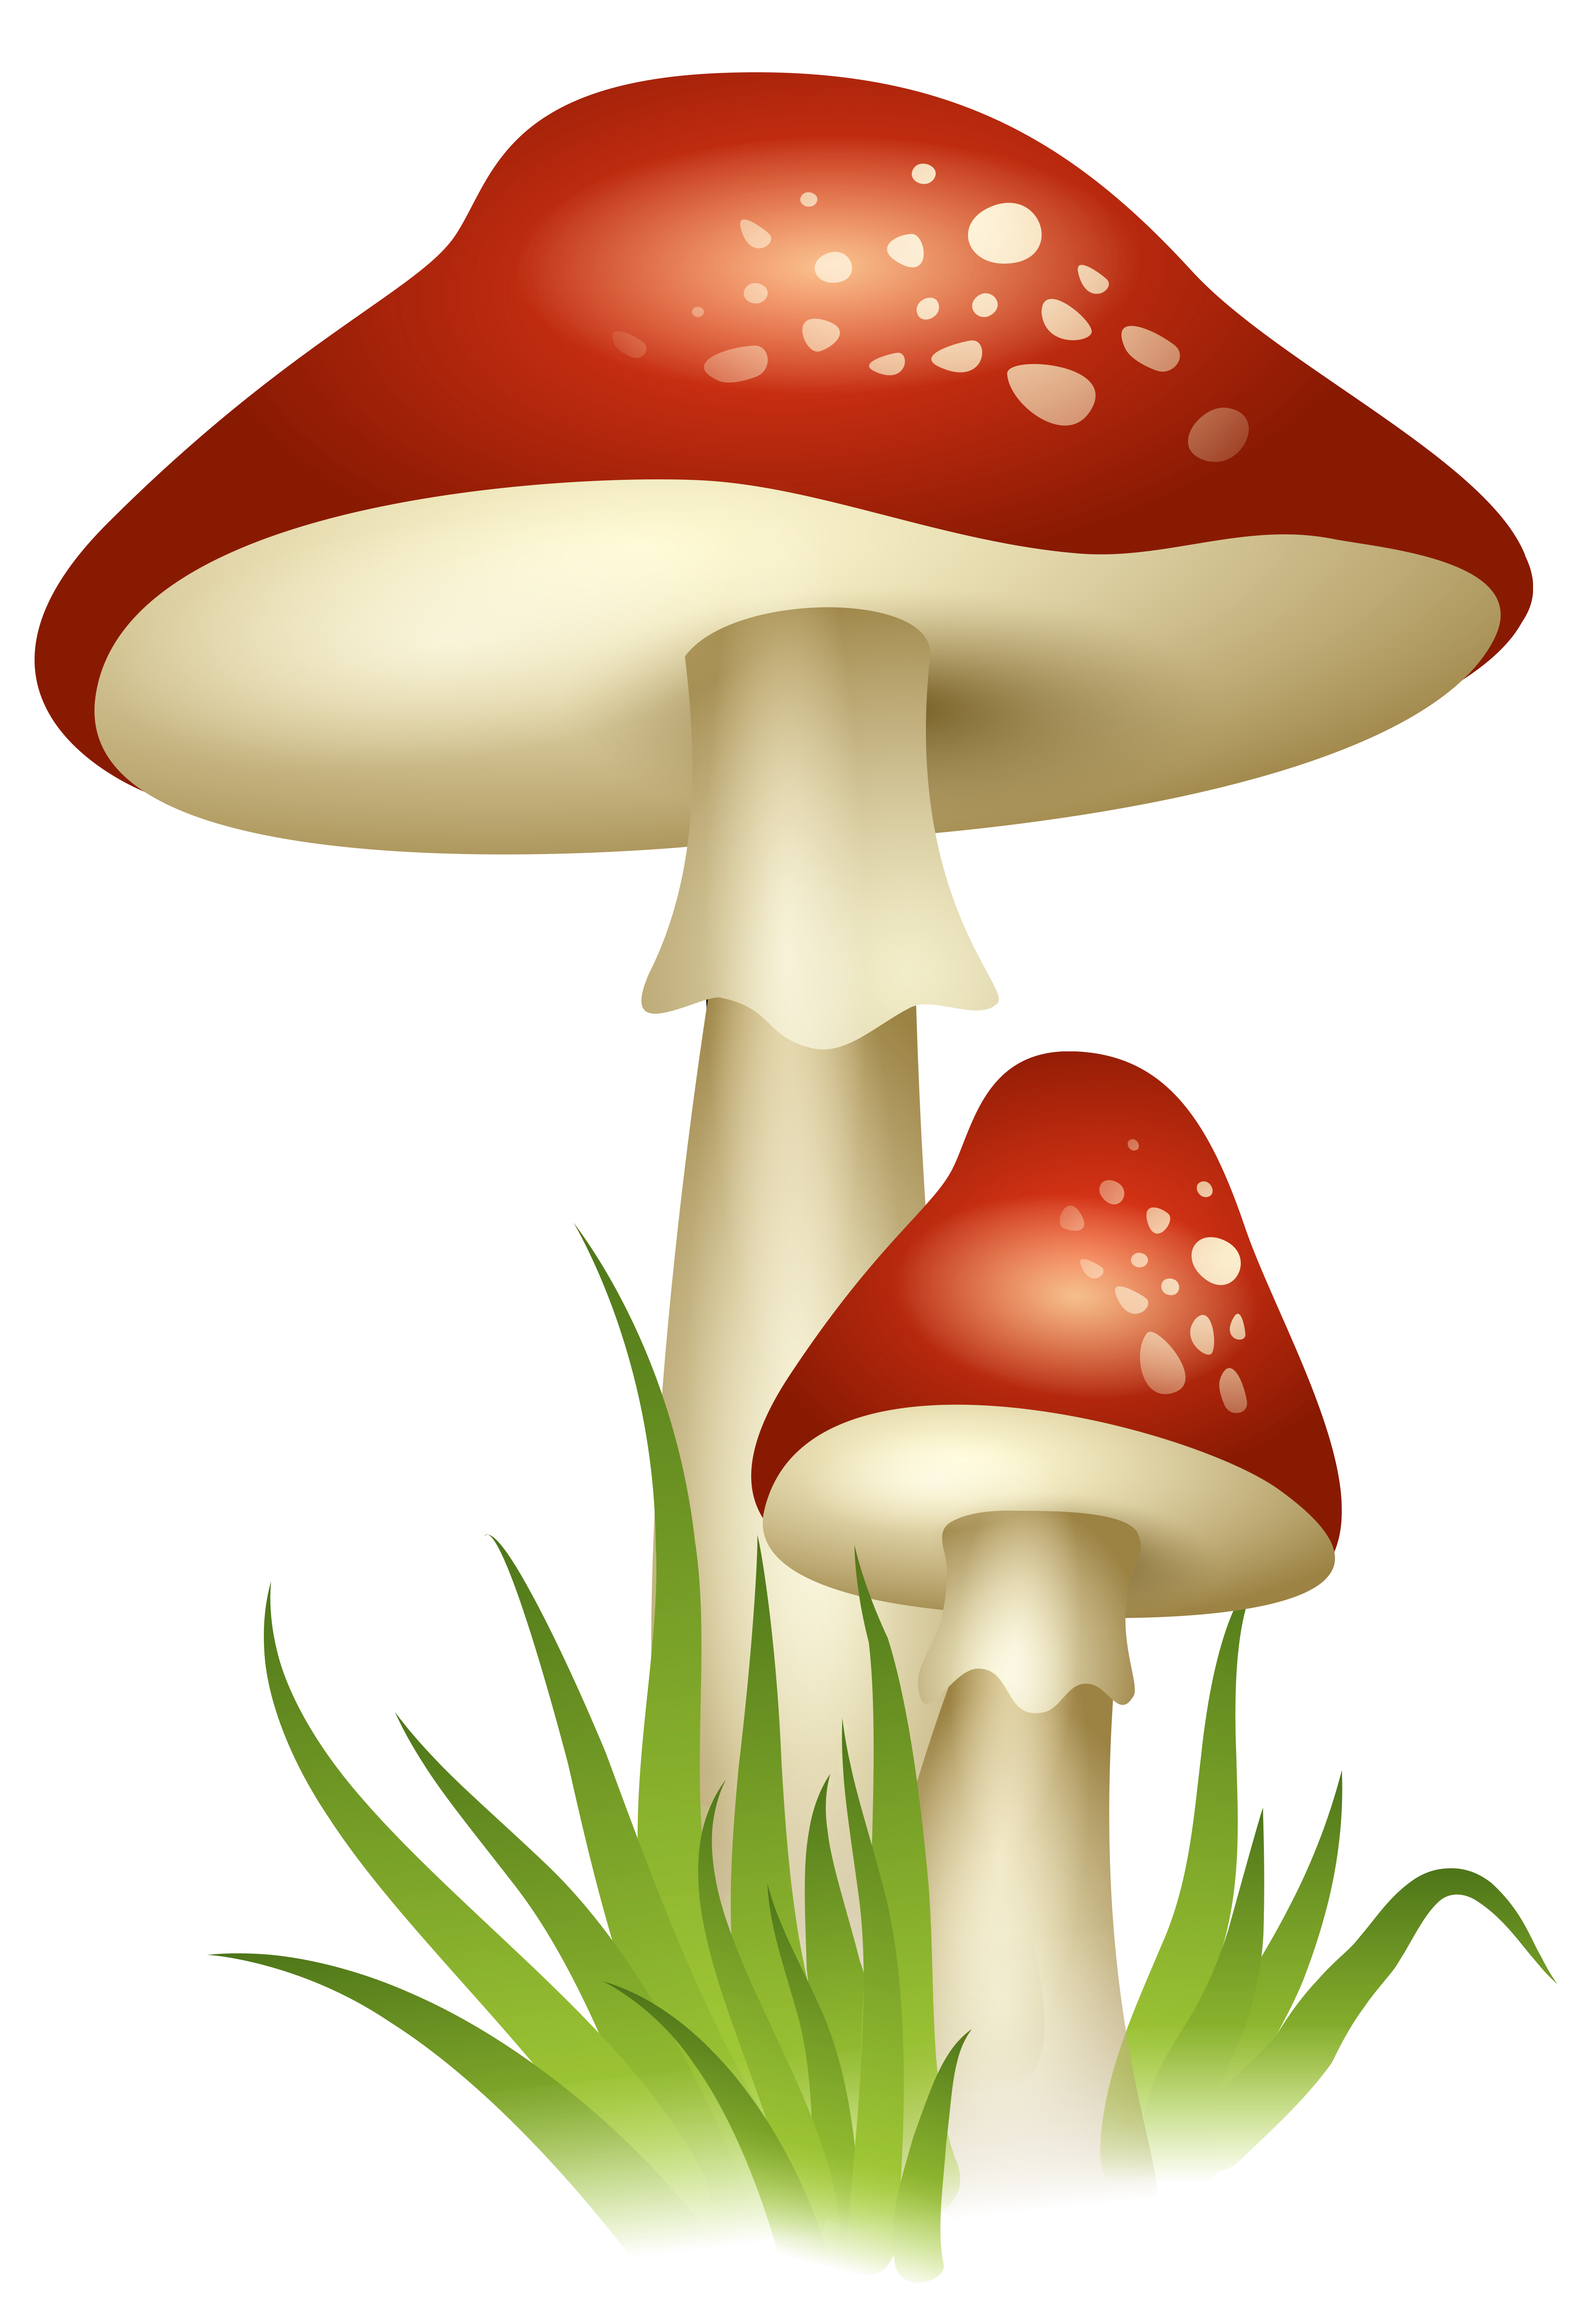 png transparent library Gnome clipart woodland mushroom. Mushrooms transparent png picture